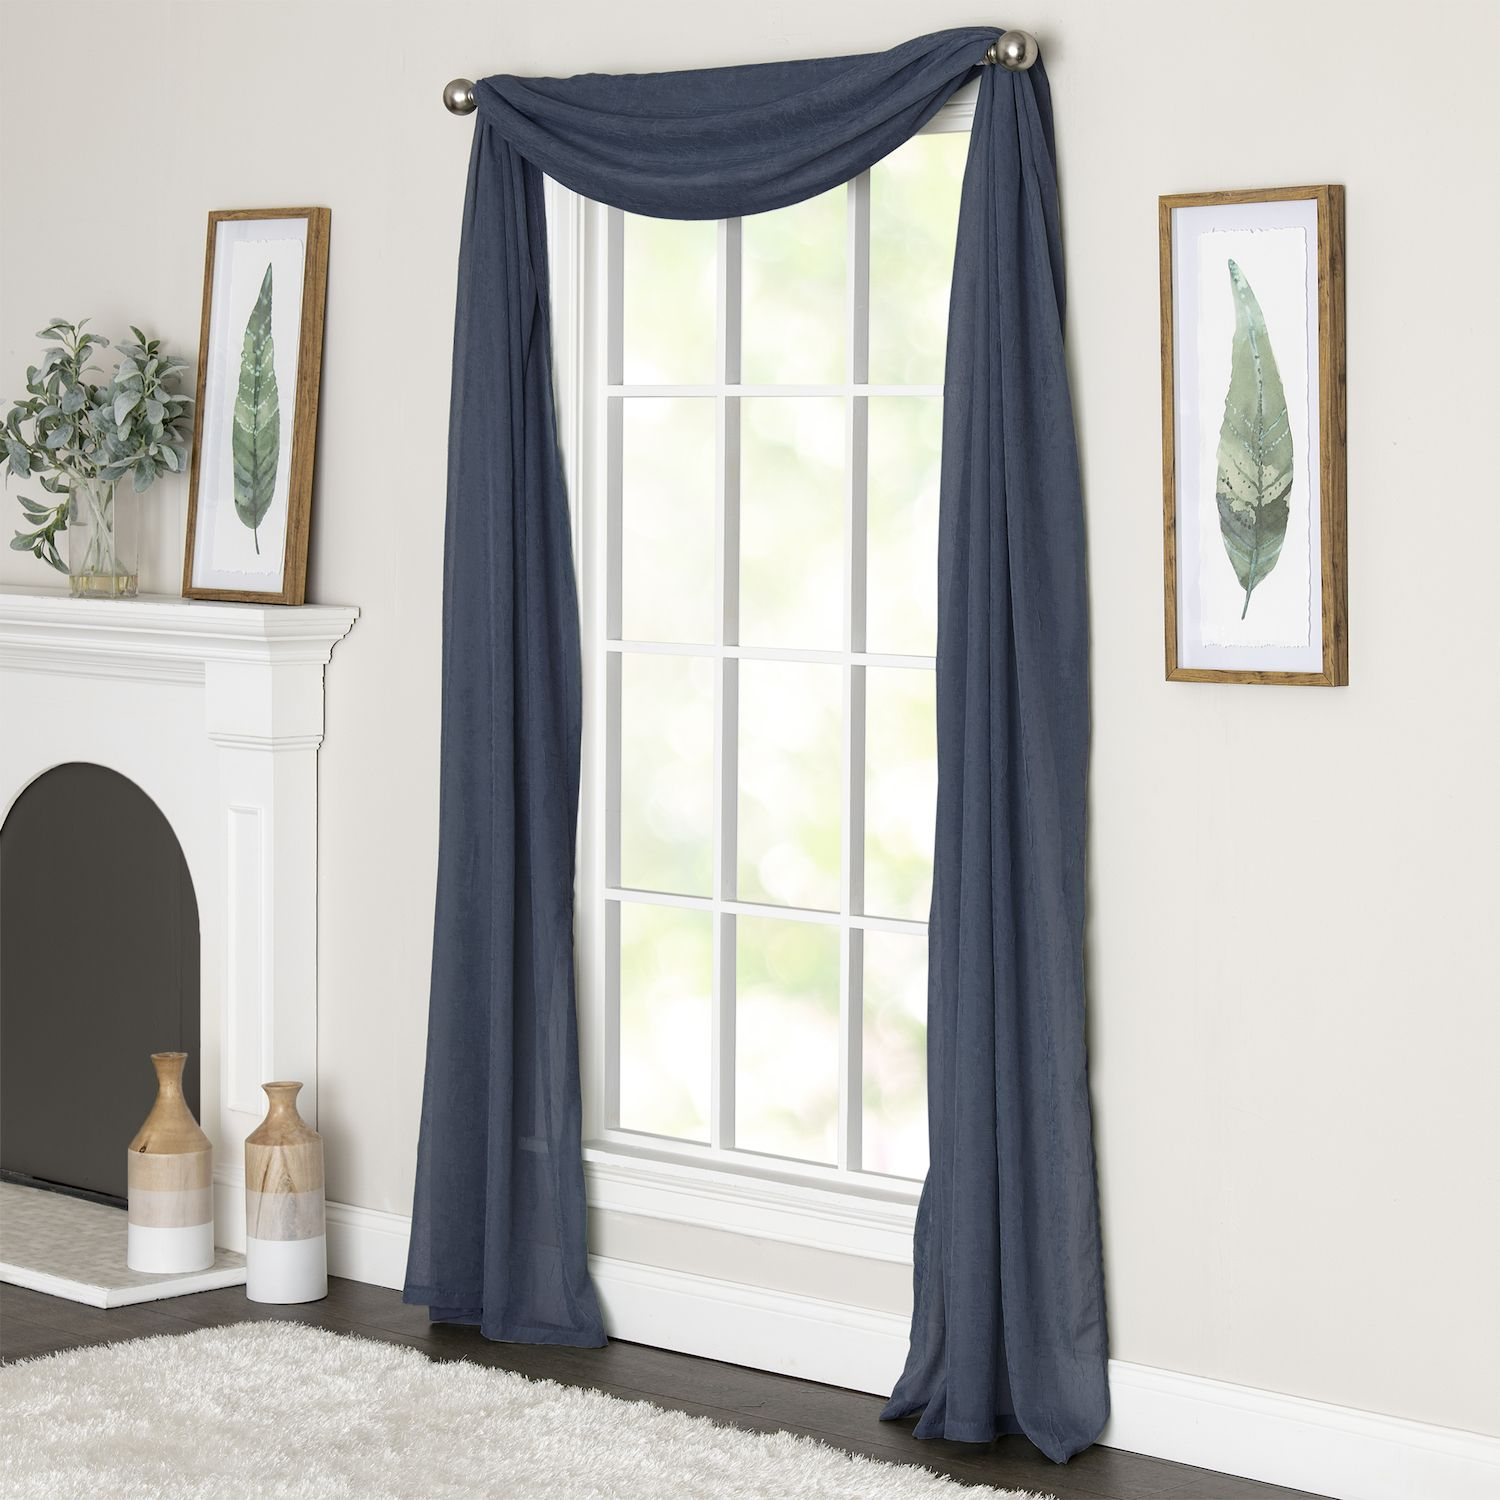 Thermal Blackout Curtains 90 X 72 - Best Curtains 2017